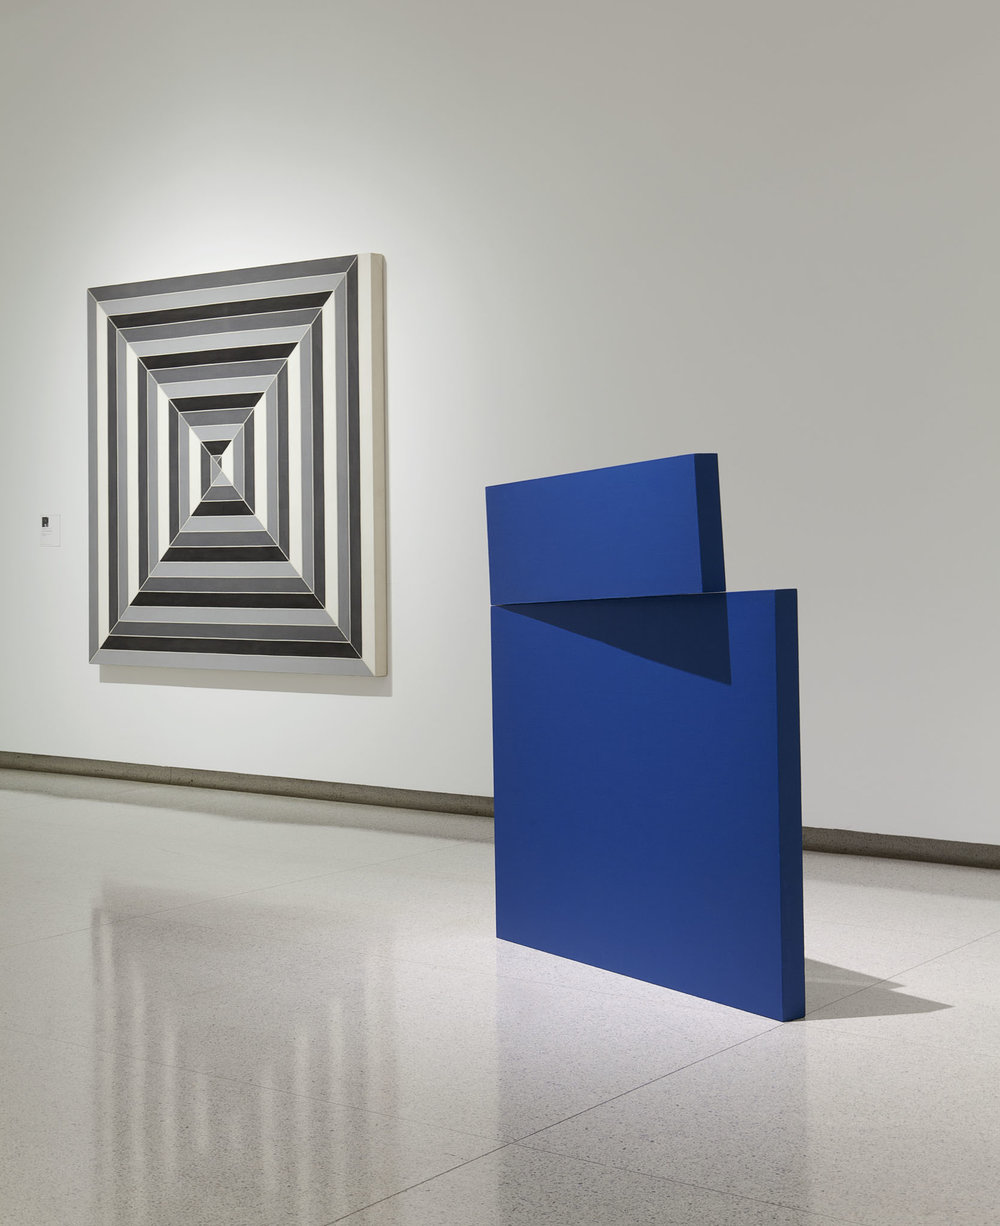 Carmen Herrera exhibit at the Walker Art Center